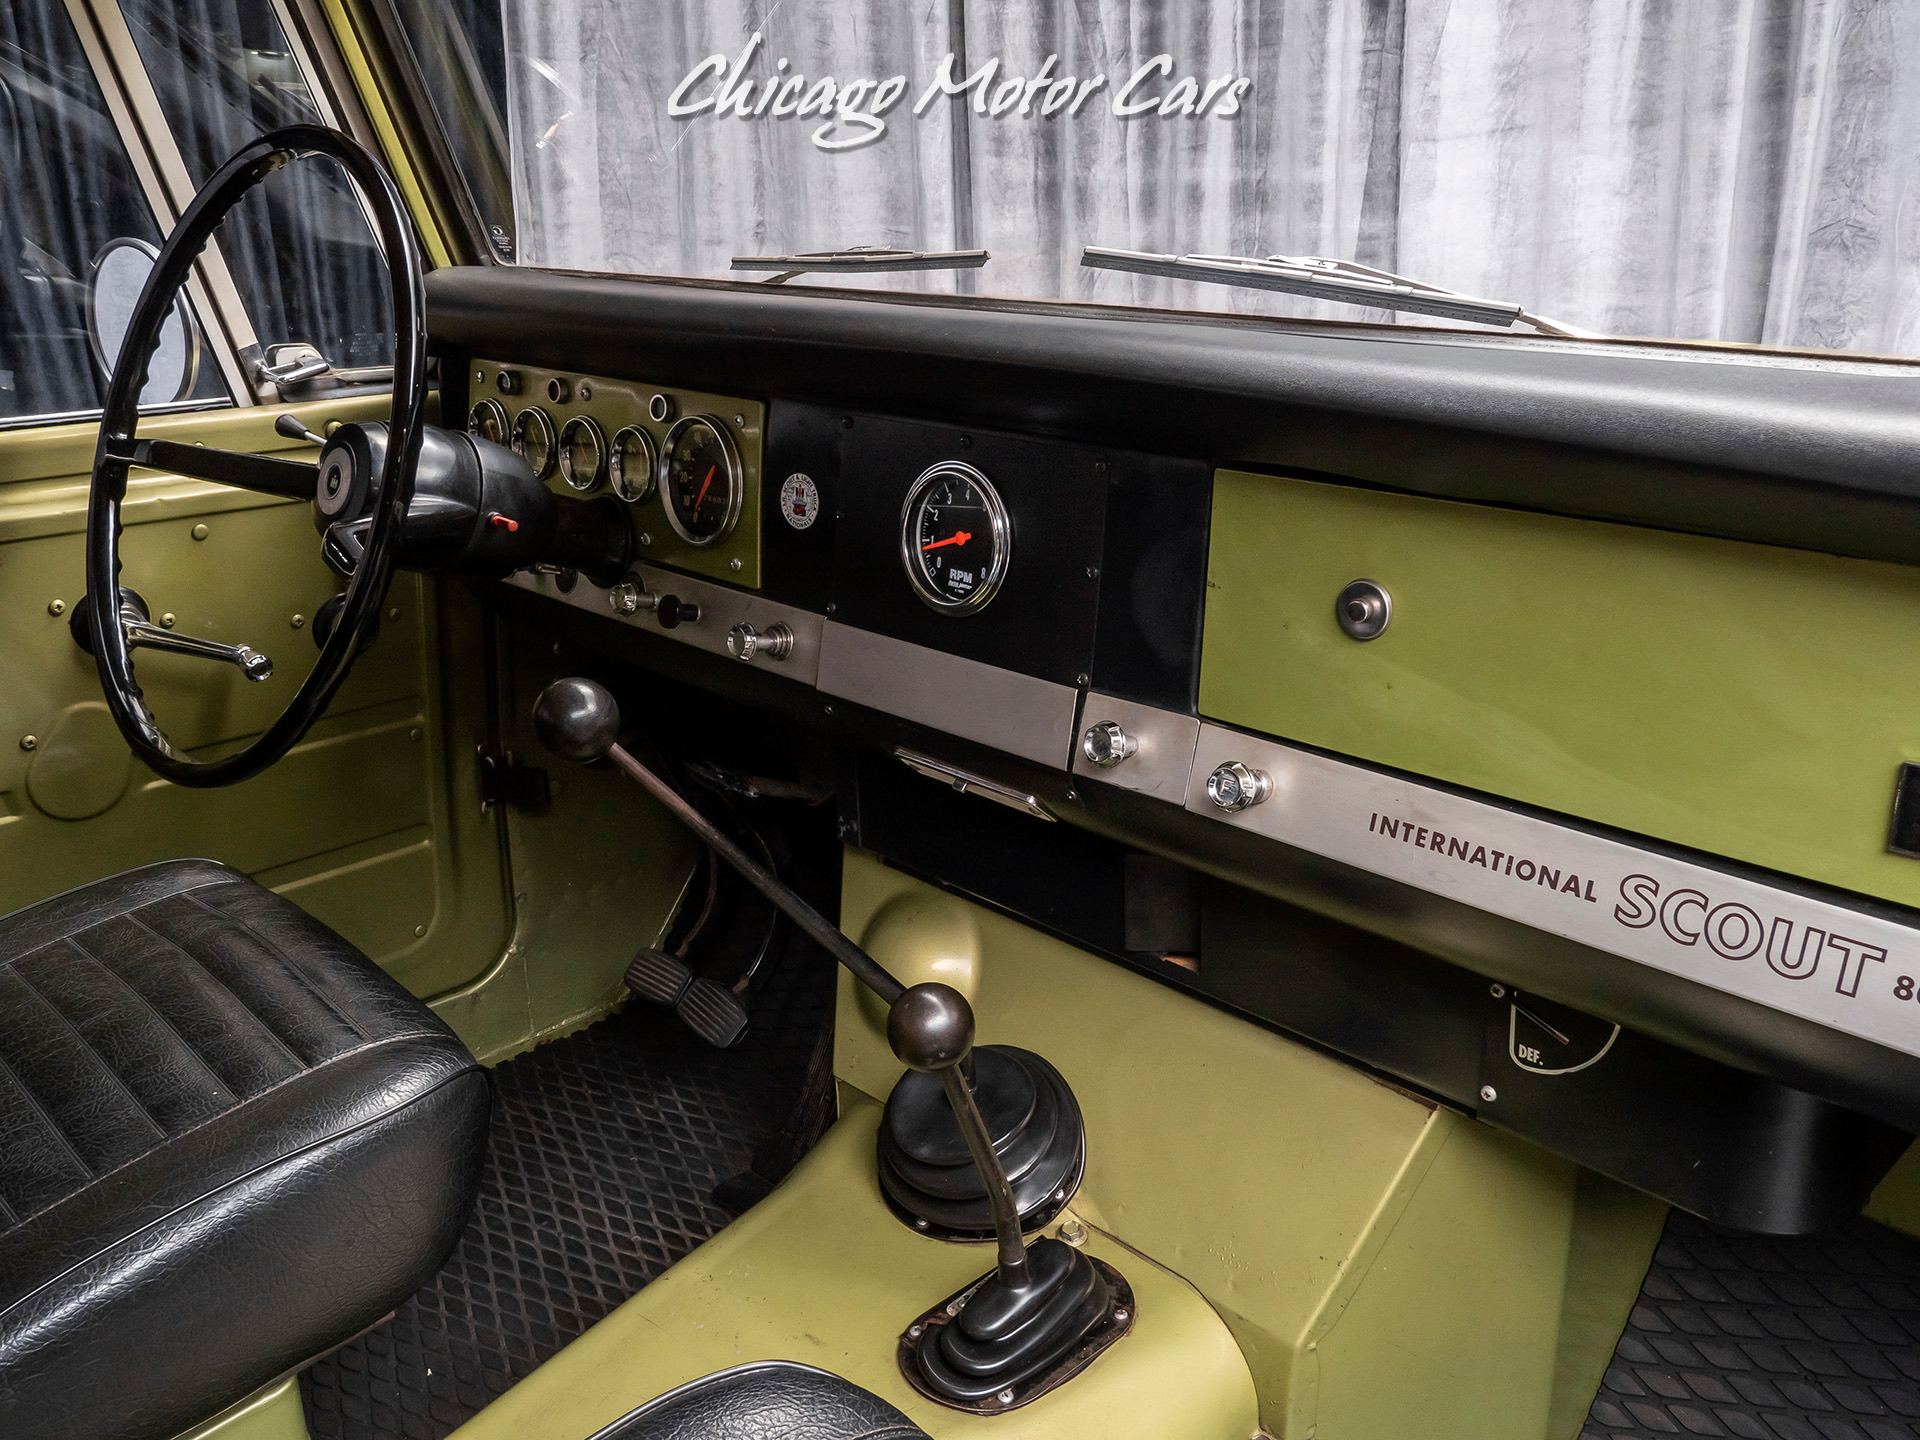 Used 1970 International Harvester Scout For Sale ($27,800